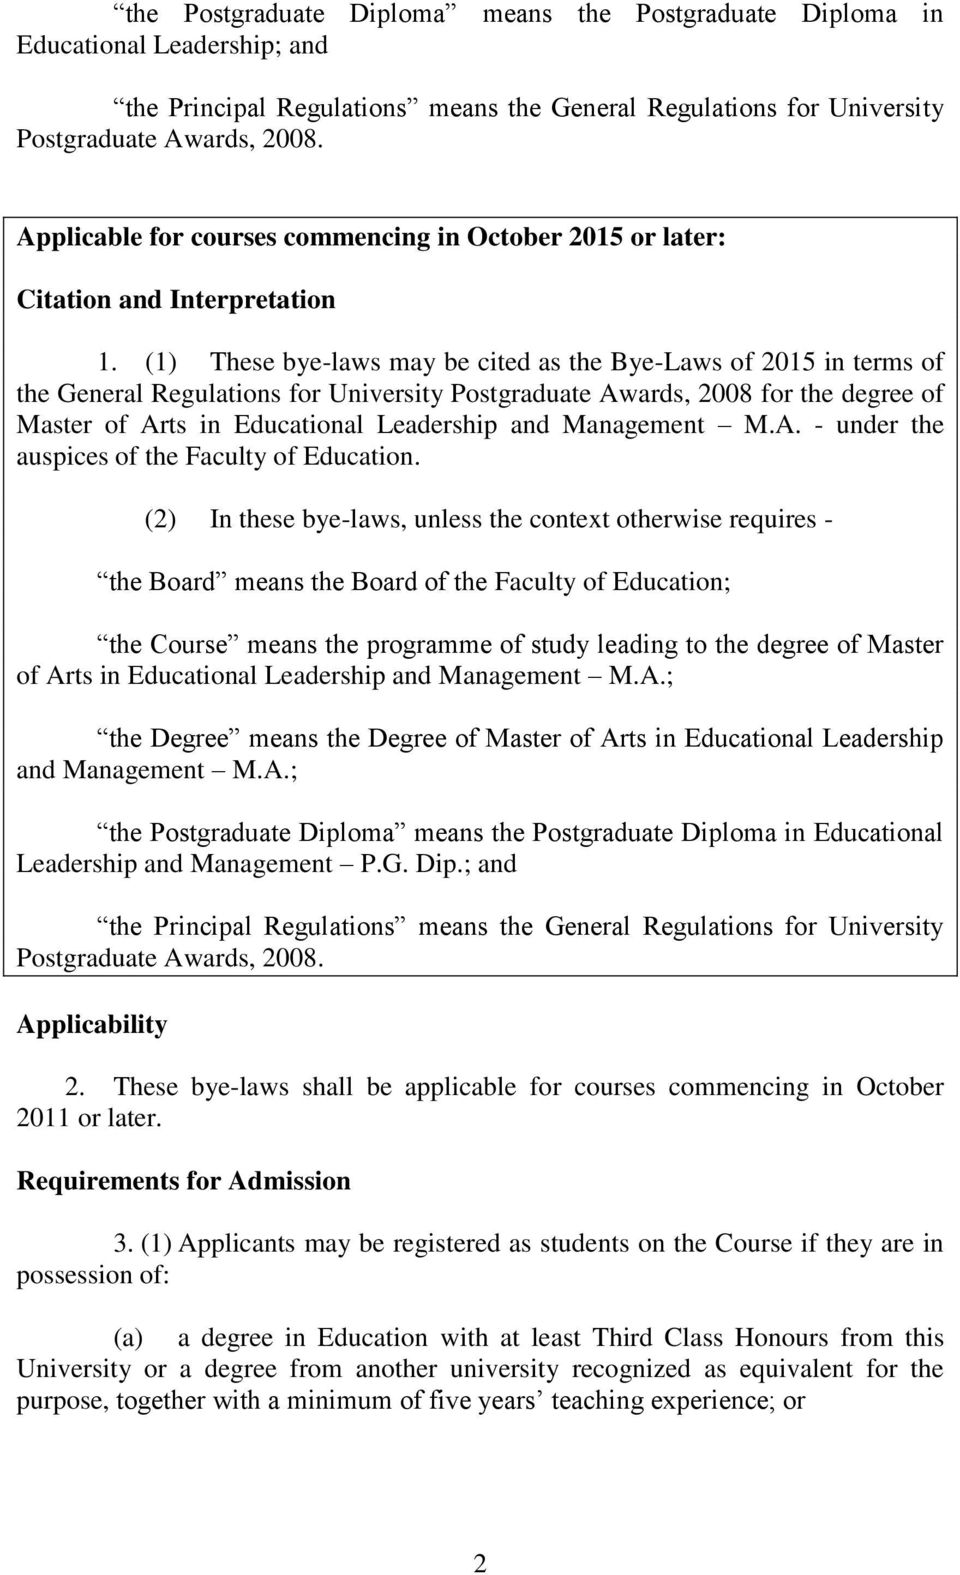 (1) These bye-laws may be cited as the Bye-Laws of 2015 in terms of the General Regulations for University Postgraduate Awards, 2008 for the degree of Master of Arts in Educational Leadership and